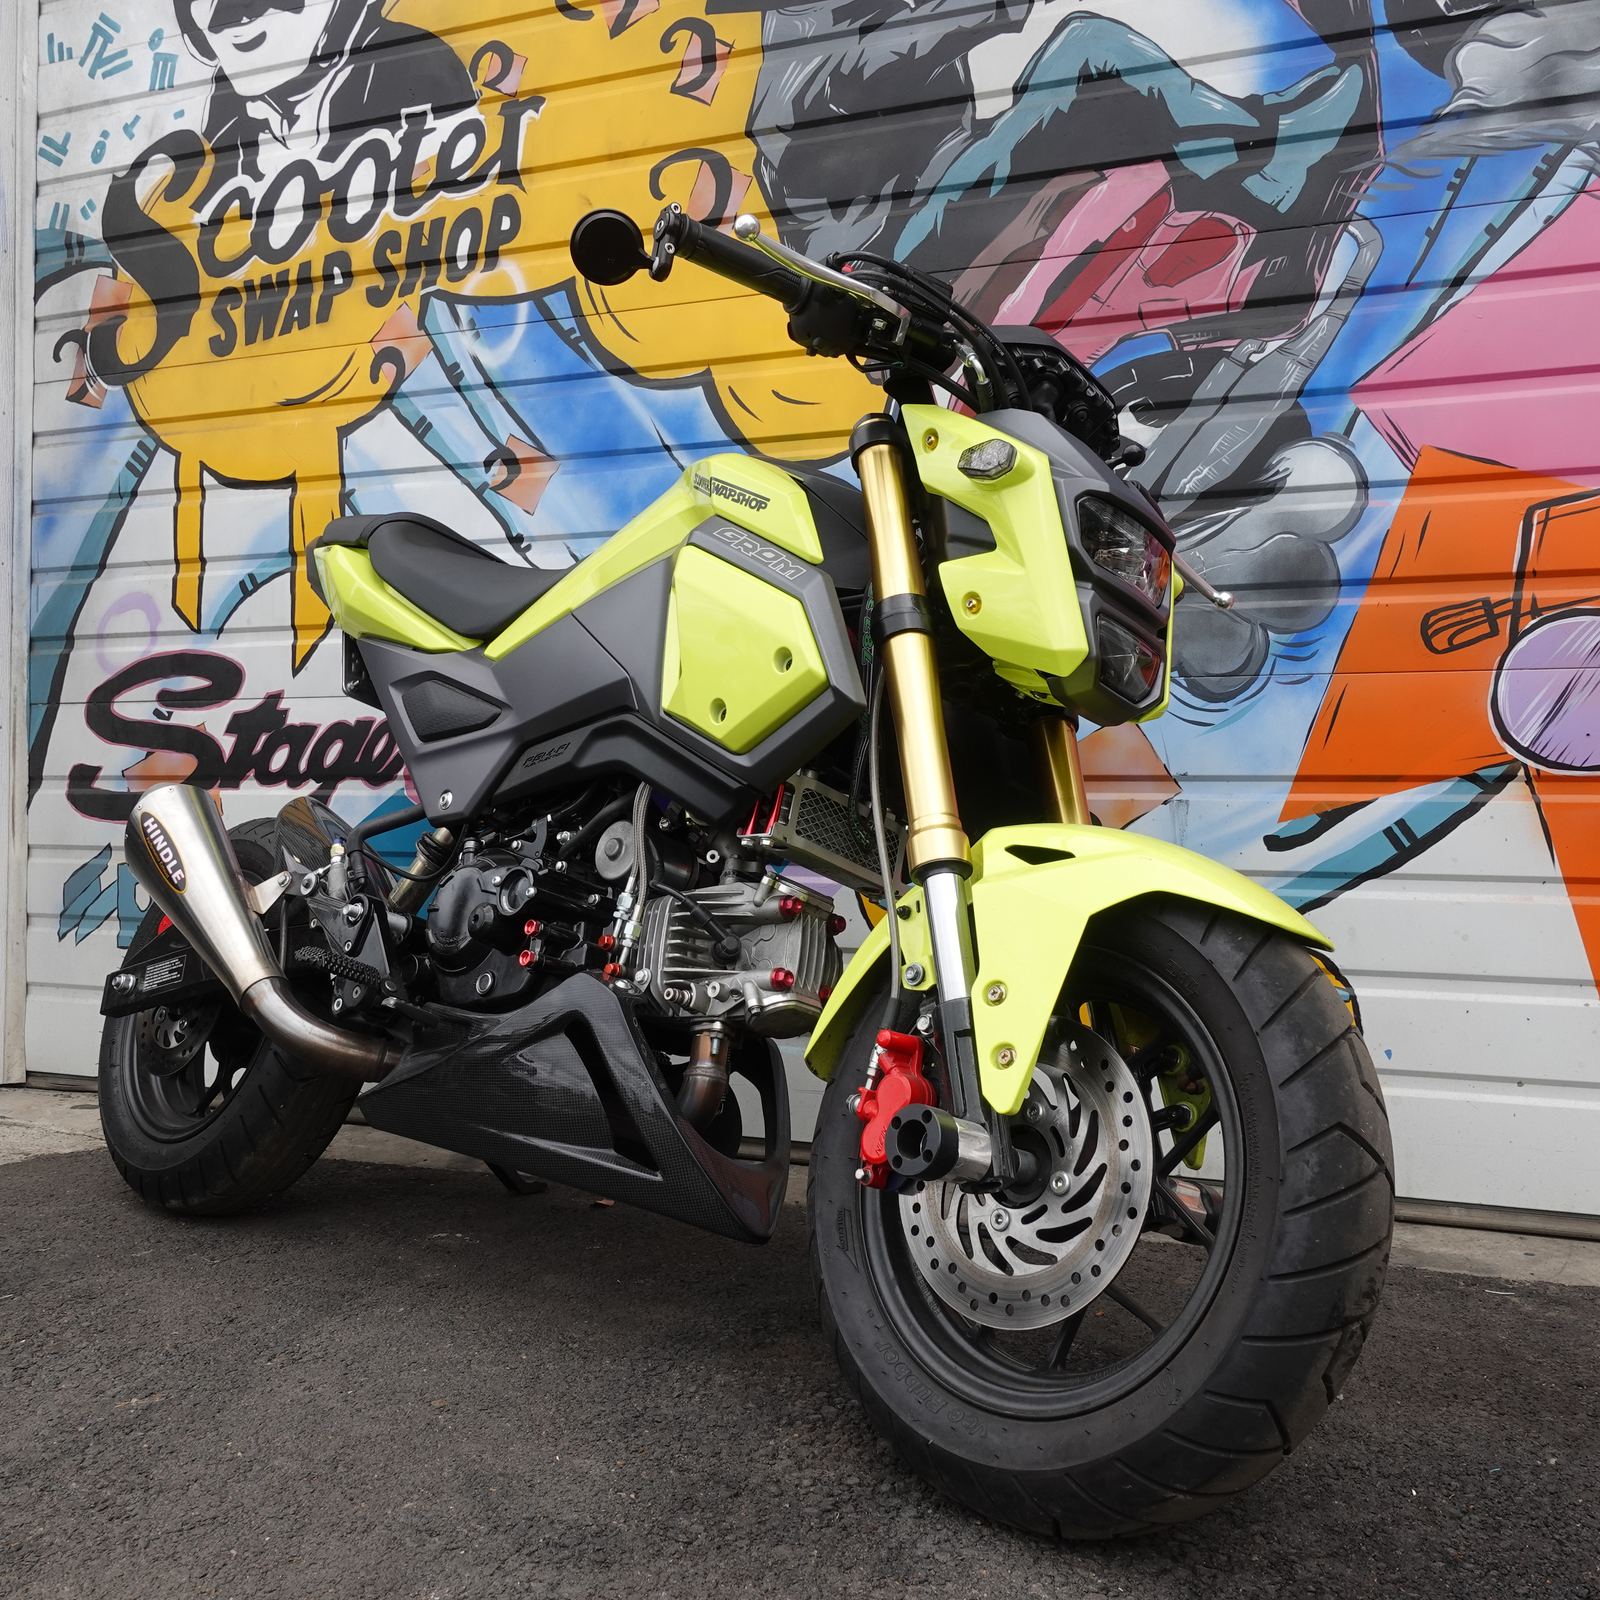 Honda Grom Aftermarket Parts From The Scooterswapshop